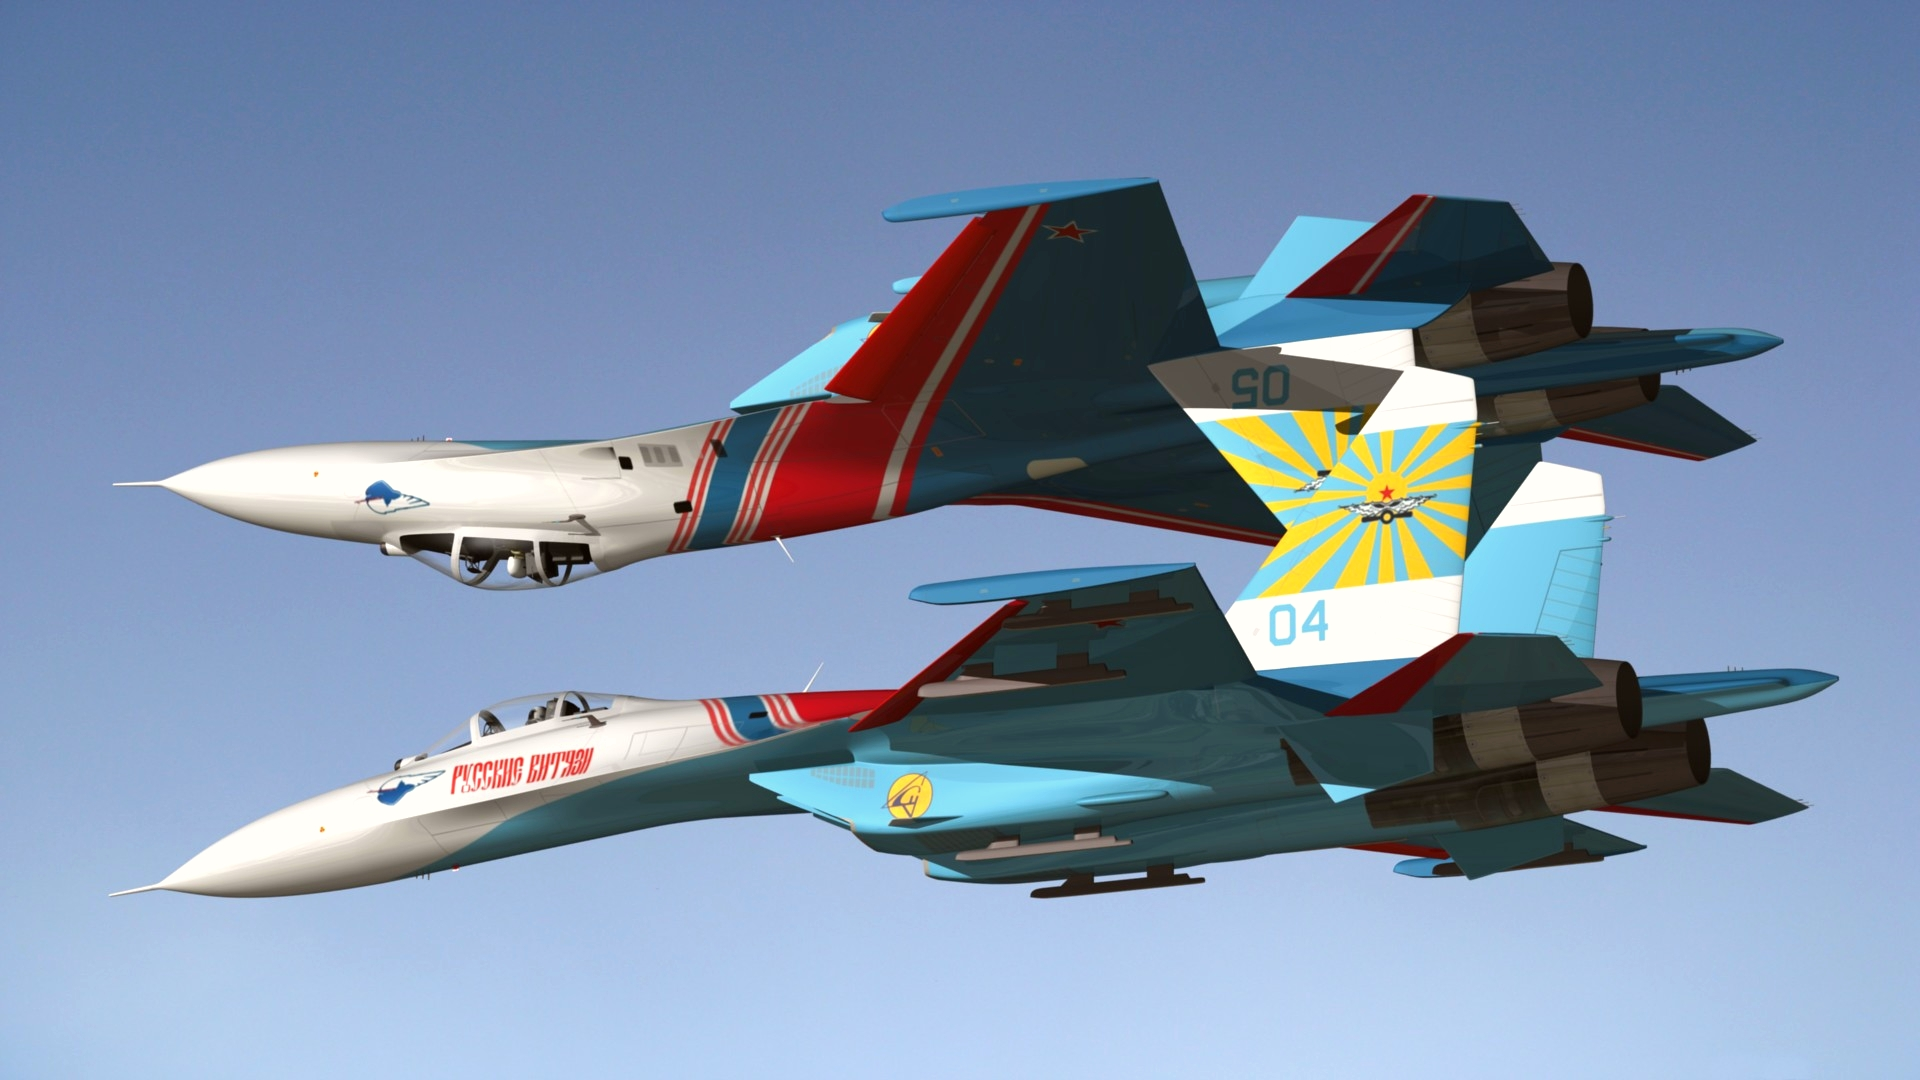 Russian Knights mirror by Emigepa